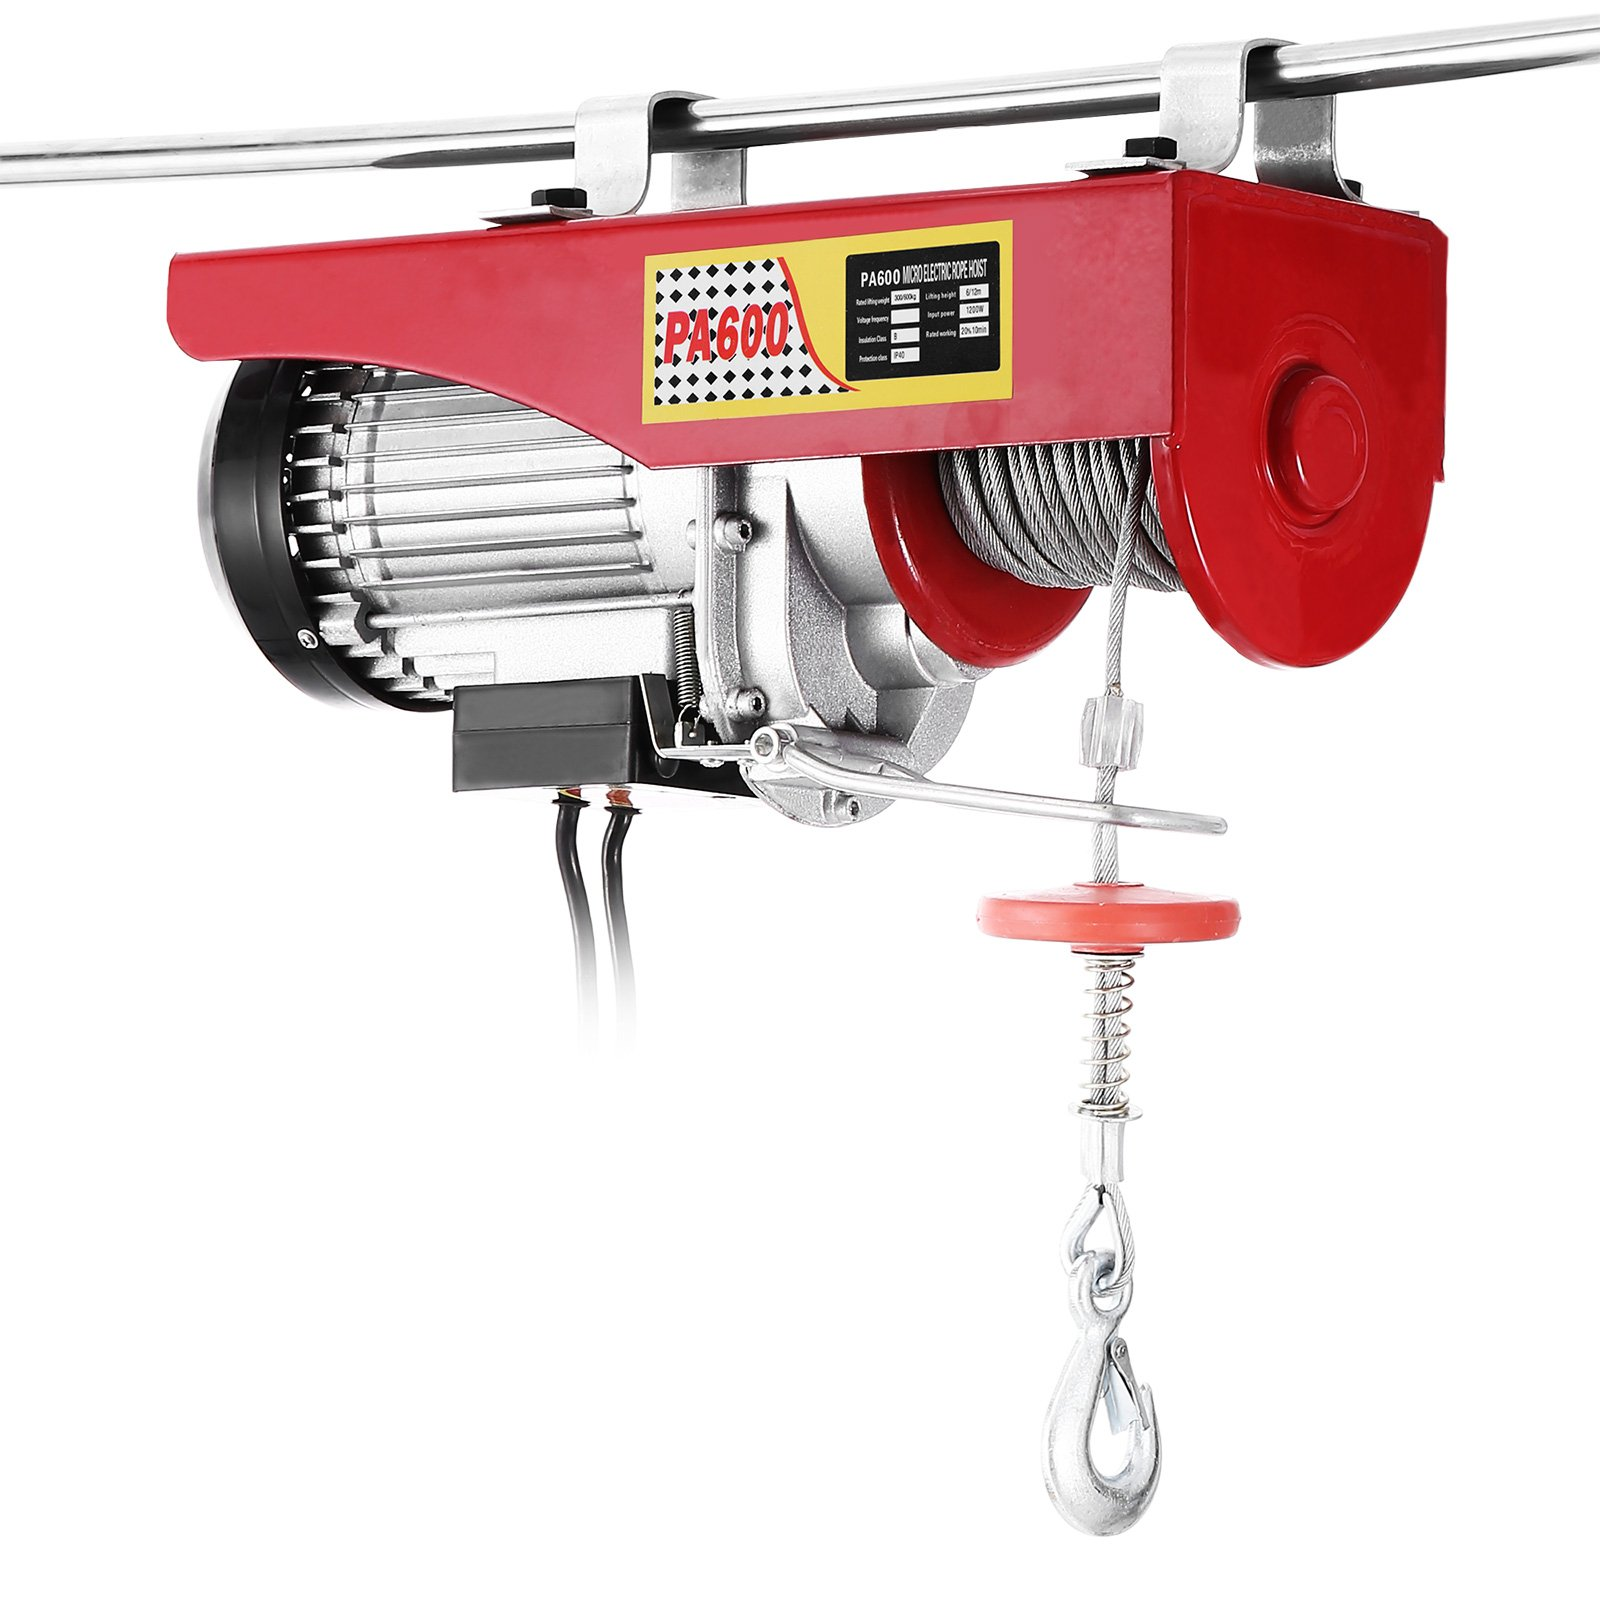 Popsport Electric Hoist 1320LBS Electric Hoist Crane 110V 1050W Lift Electric Hoist Crane Overhead Garage Winch with Hand Control Auto Lift (1320LBS)